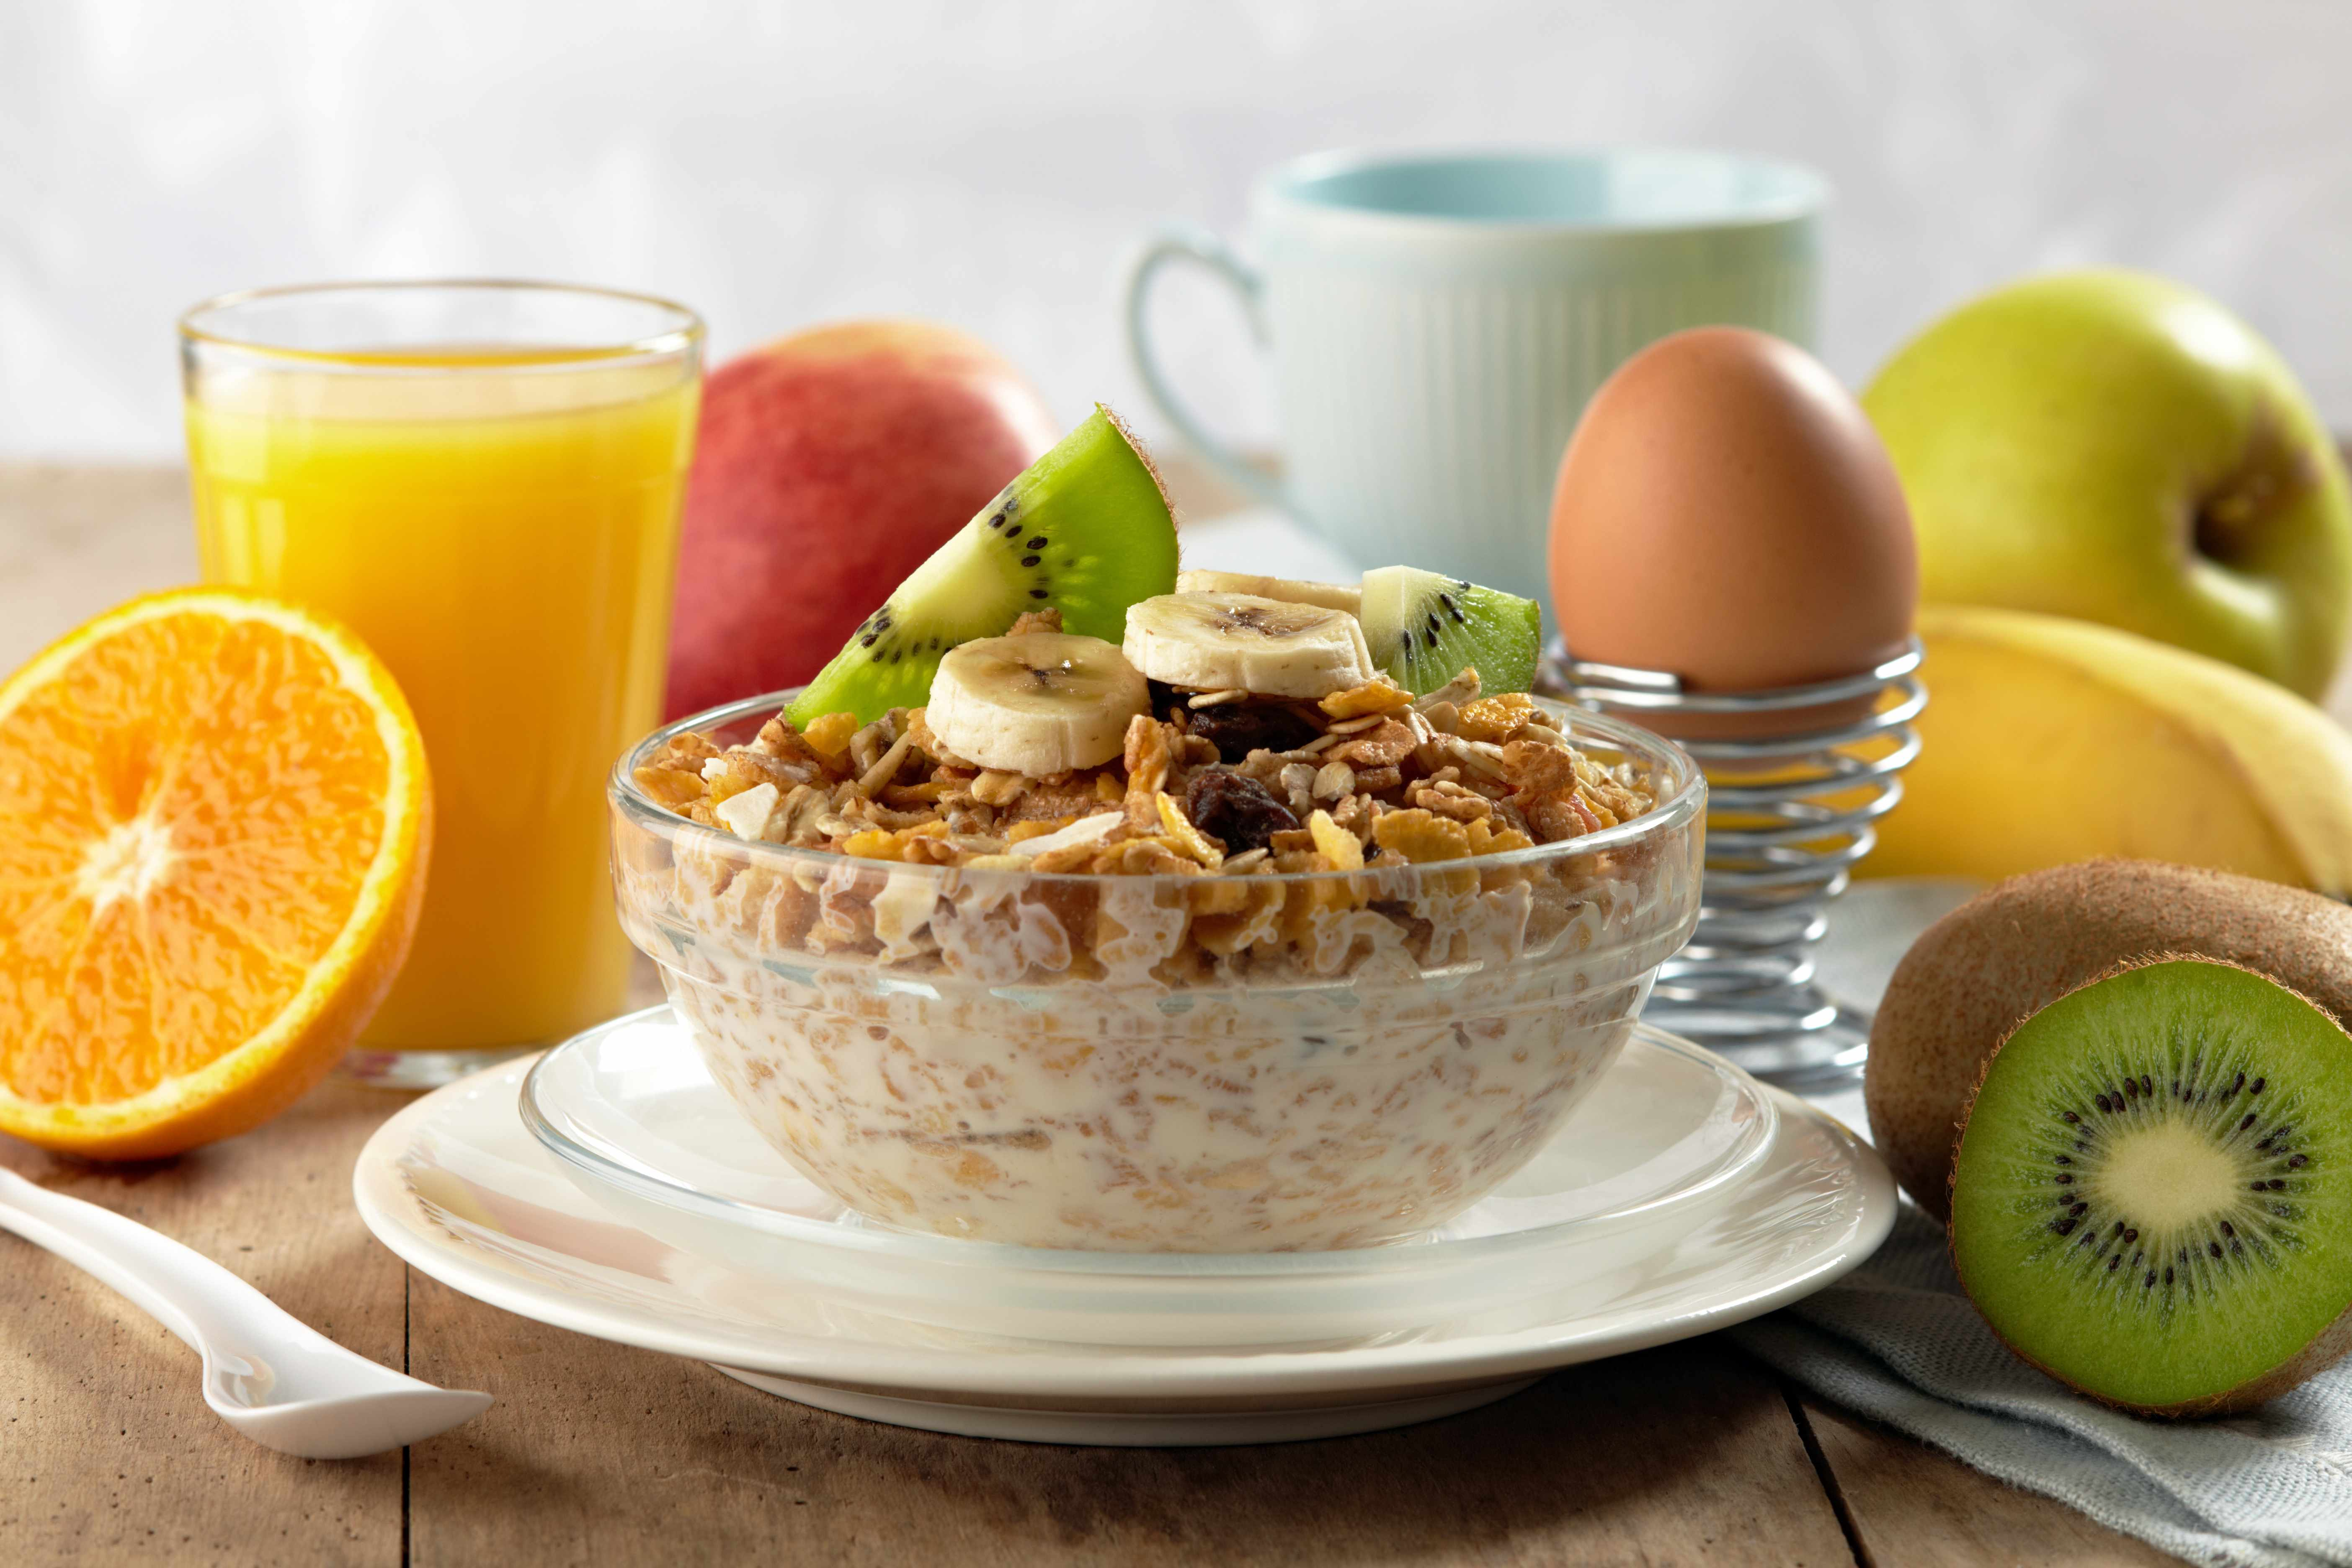 a nutritious, healthy breakfast with cereal, fruit, juice and an egg